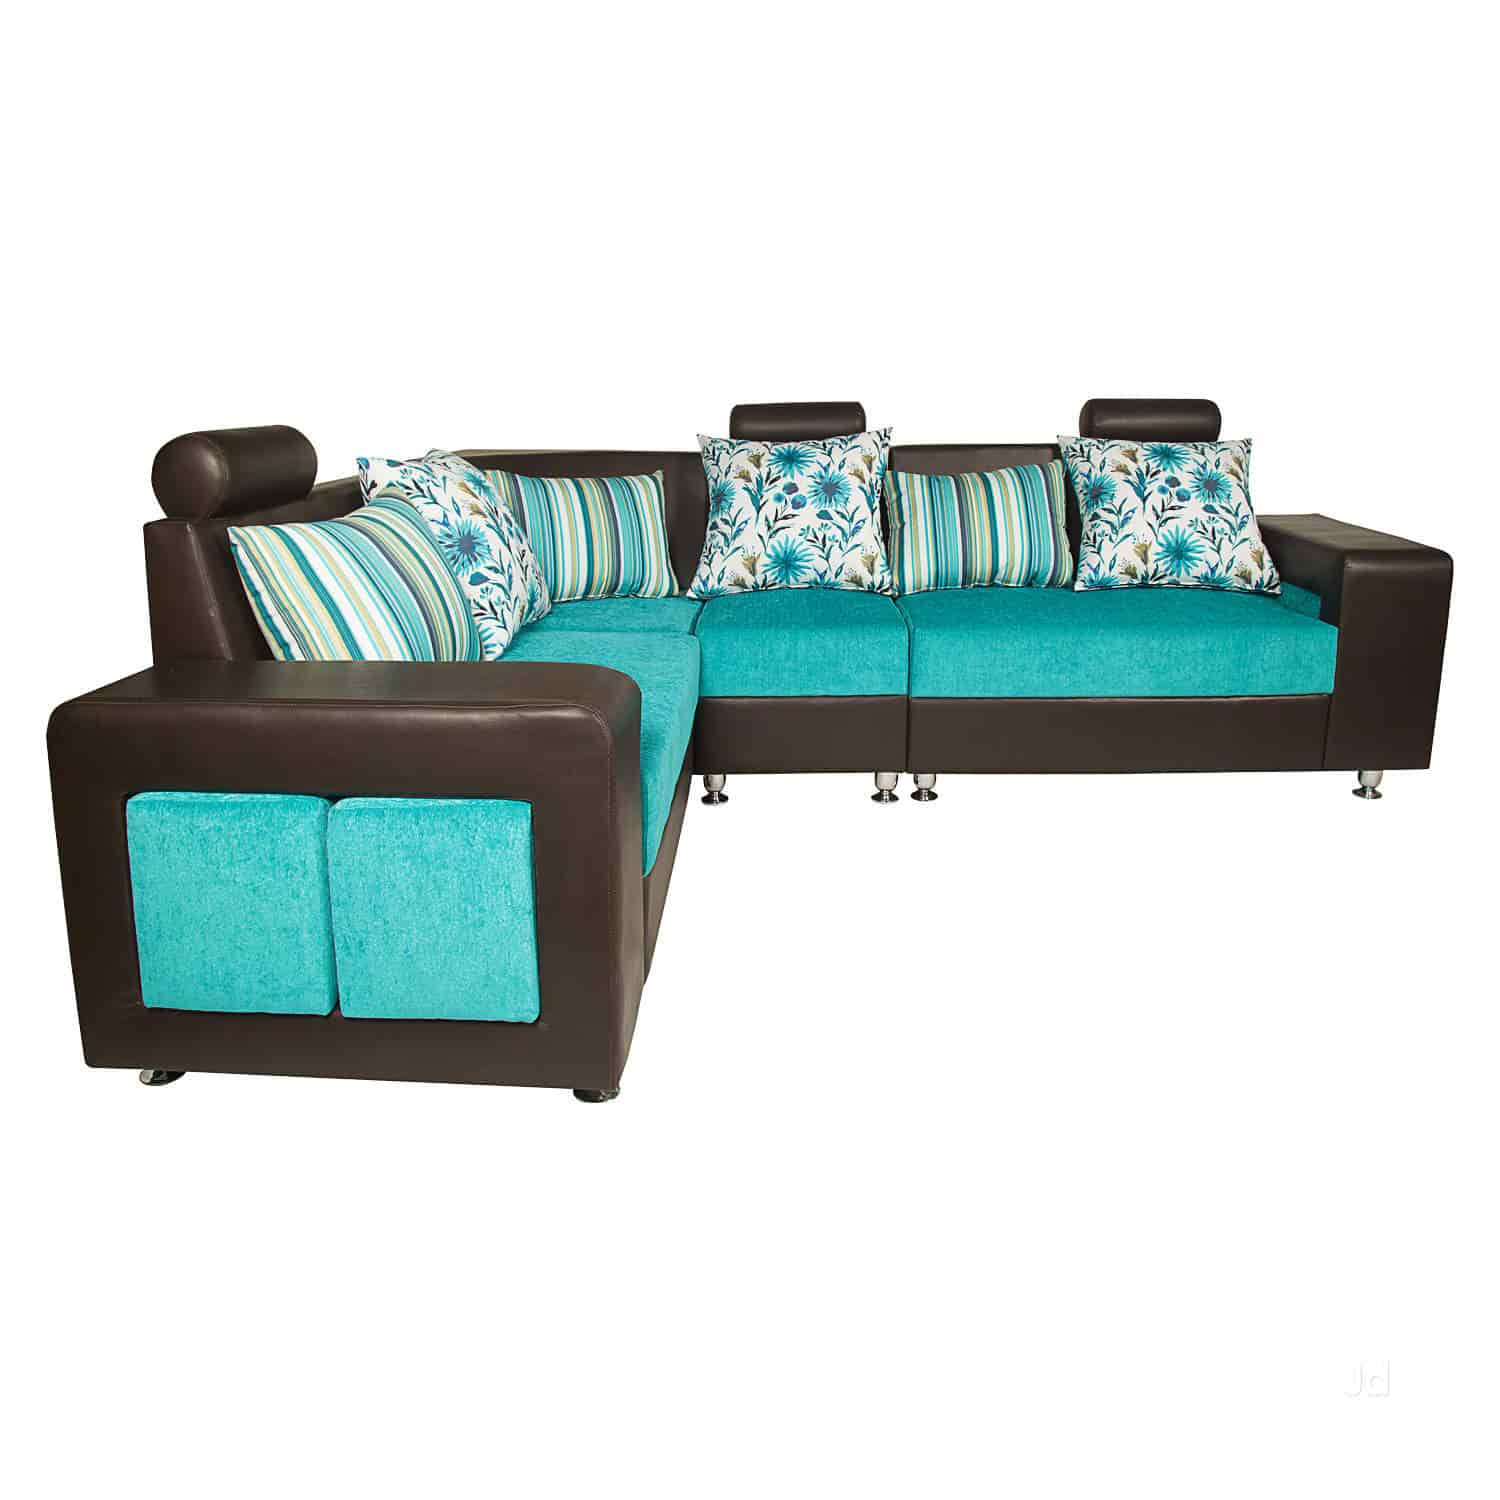 Marvelous Top Theatre Recliner Chair Dealers In Hyderabad Best Home Pabps2019 Chair Design Images Pabps2019Com